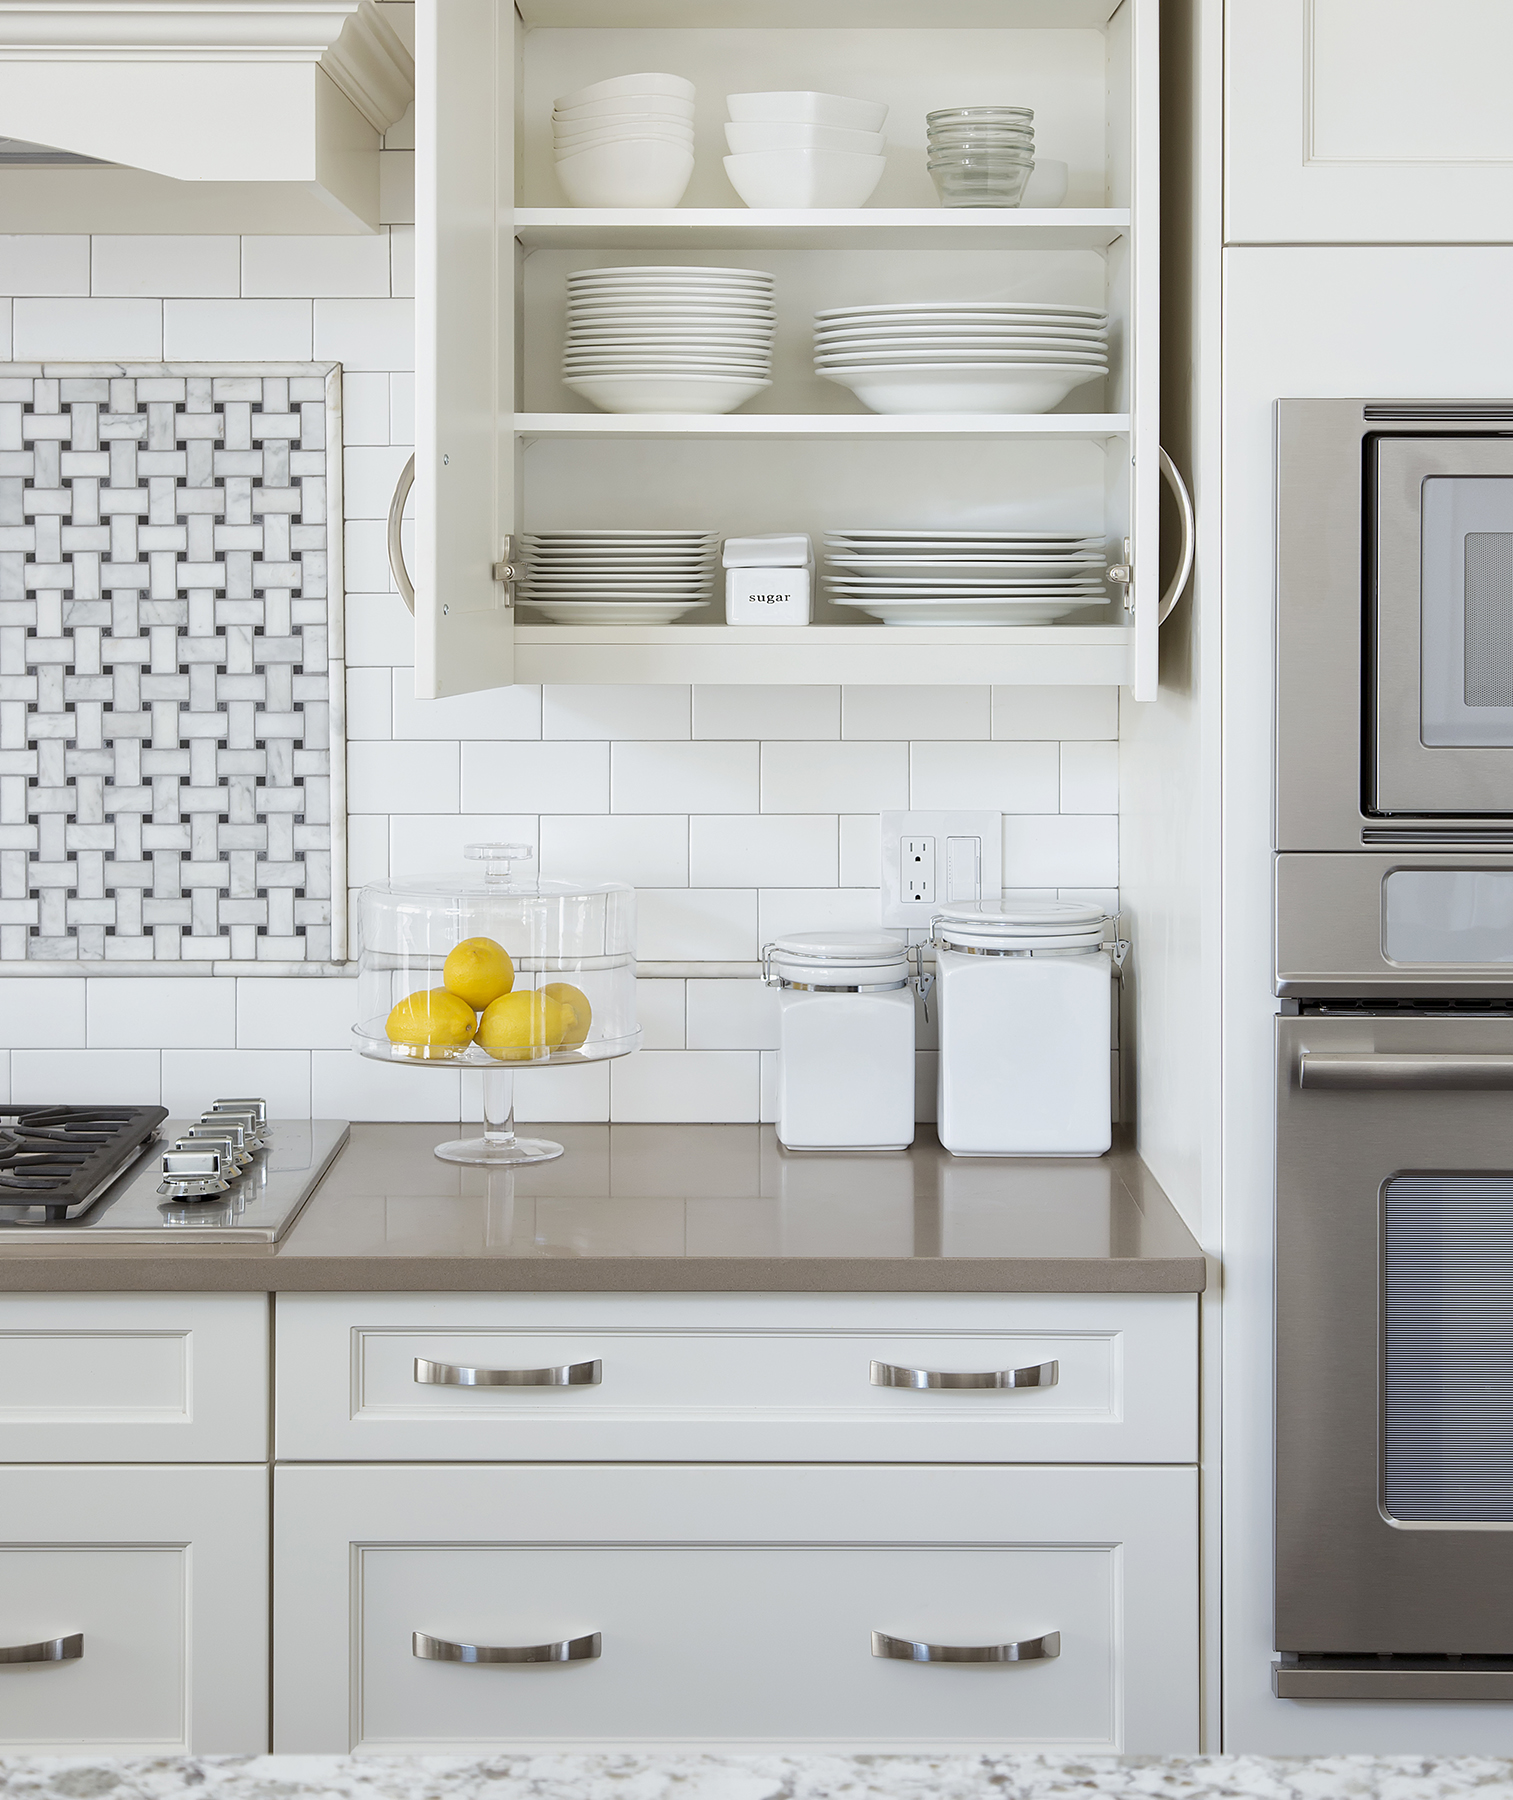 8 Kitchen Storage Secrets